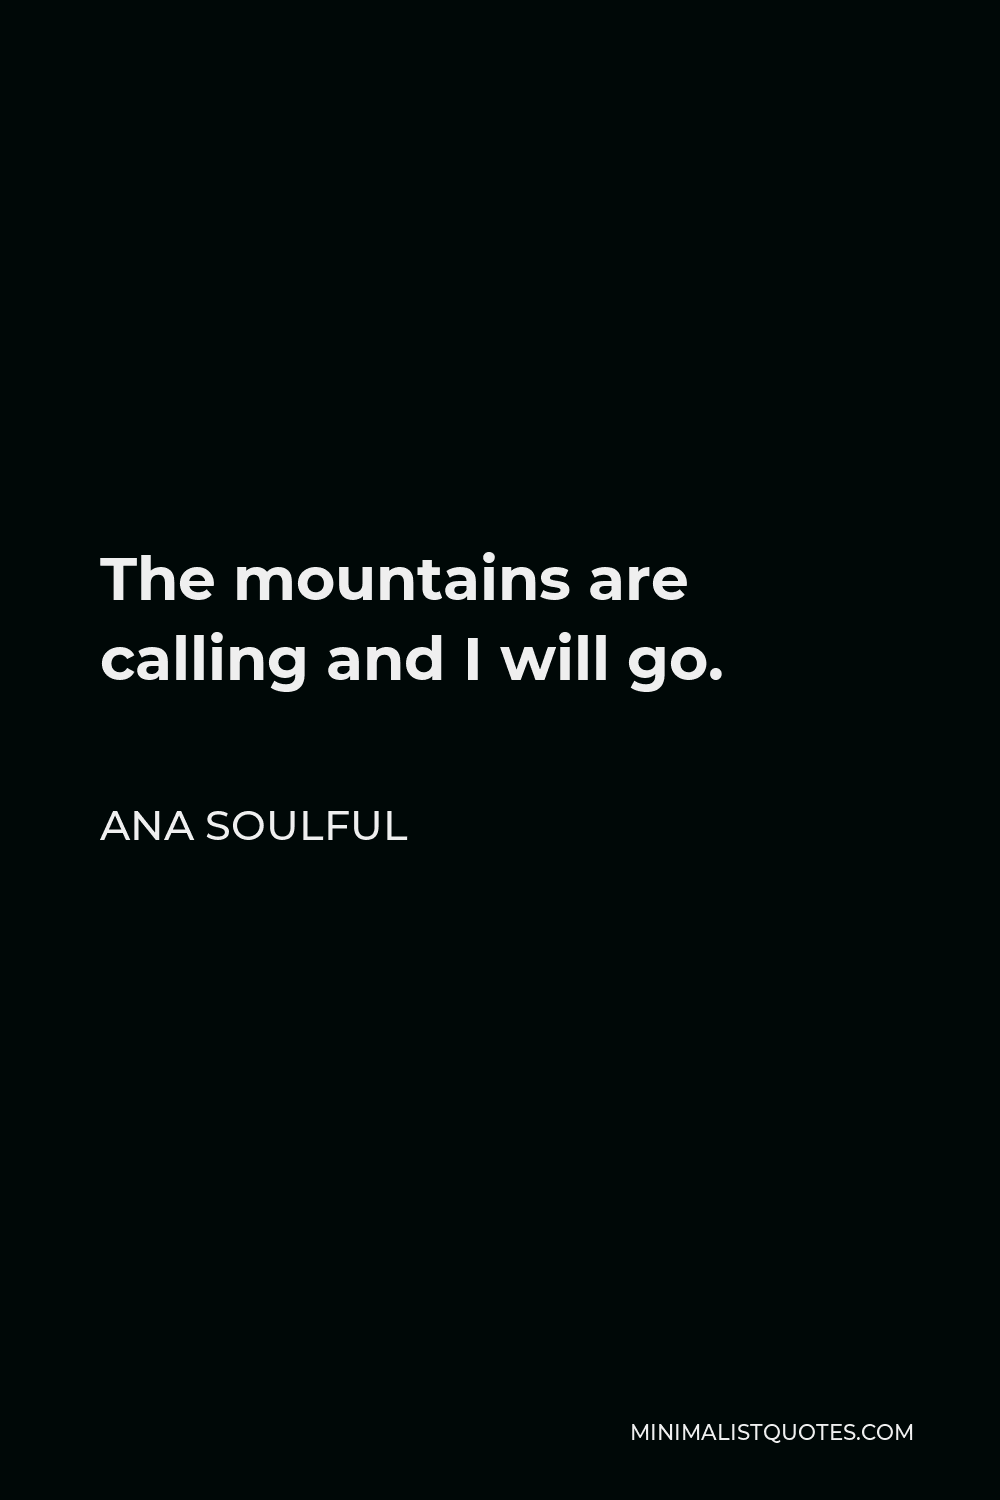 Ana Soulful Quote - The mountains are calling and I will go.